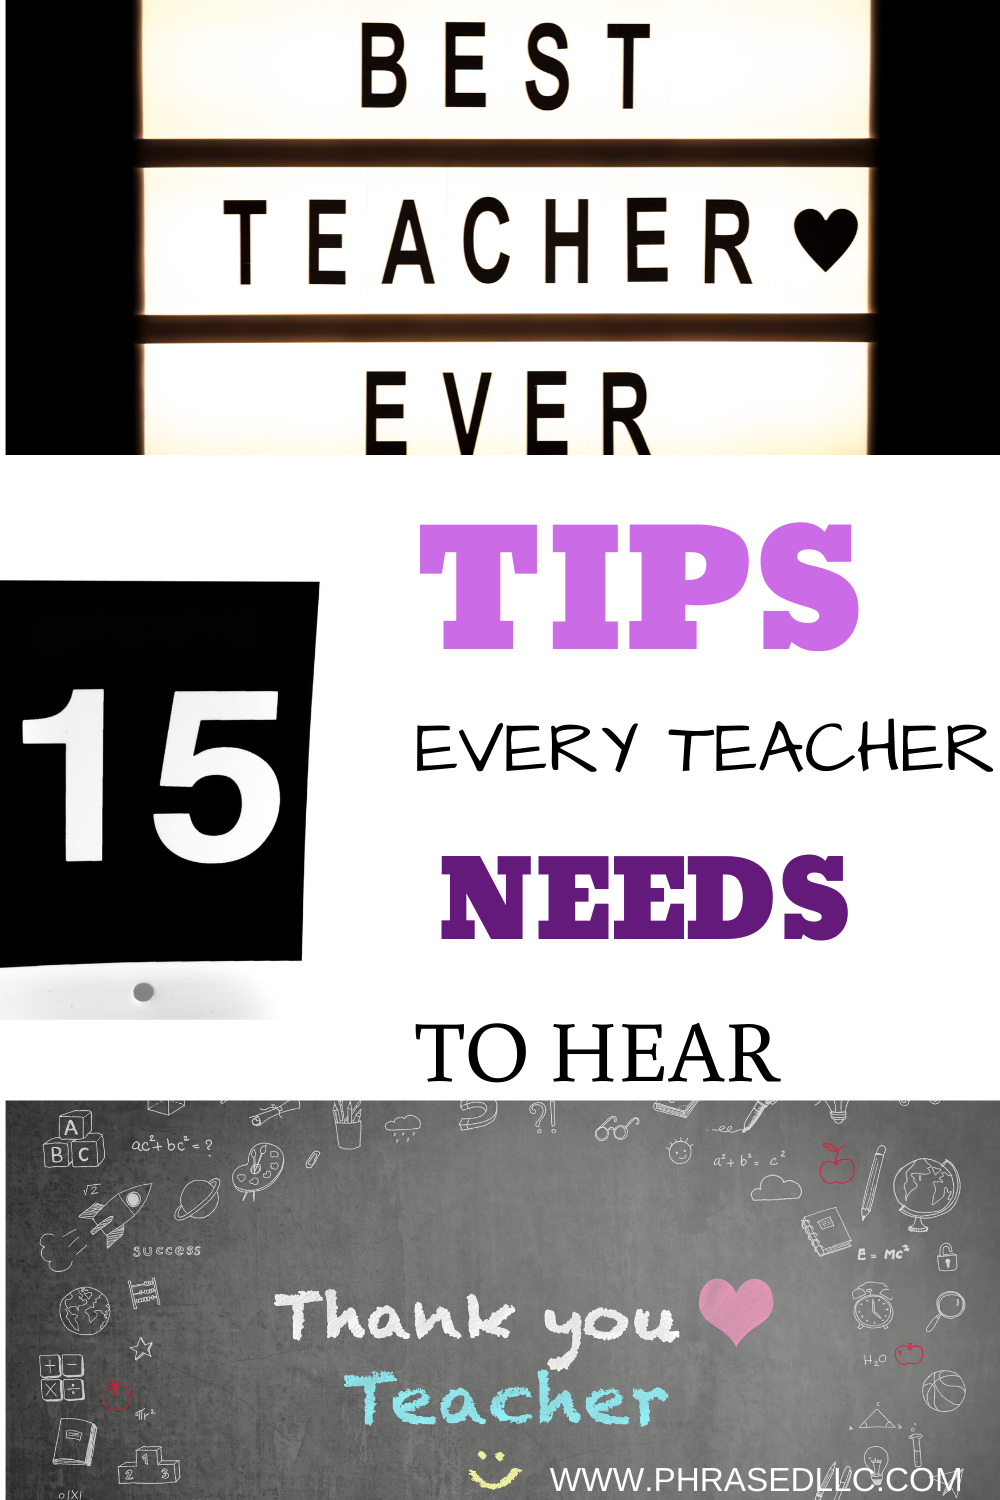 Be the best teacher ever for yourself and your students with tips to help with classroom setup and organization, activities, teaching style and more.